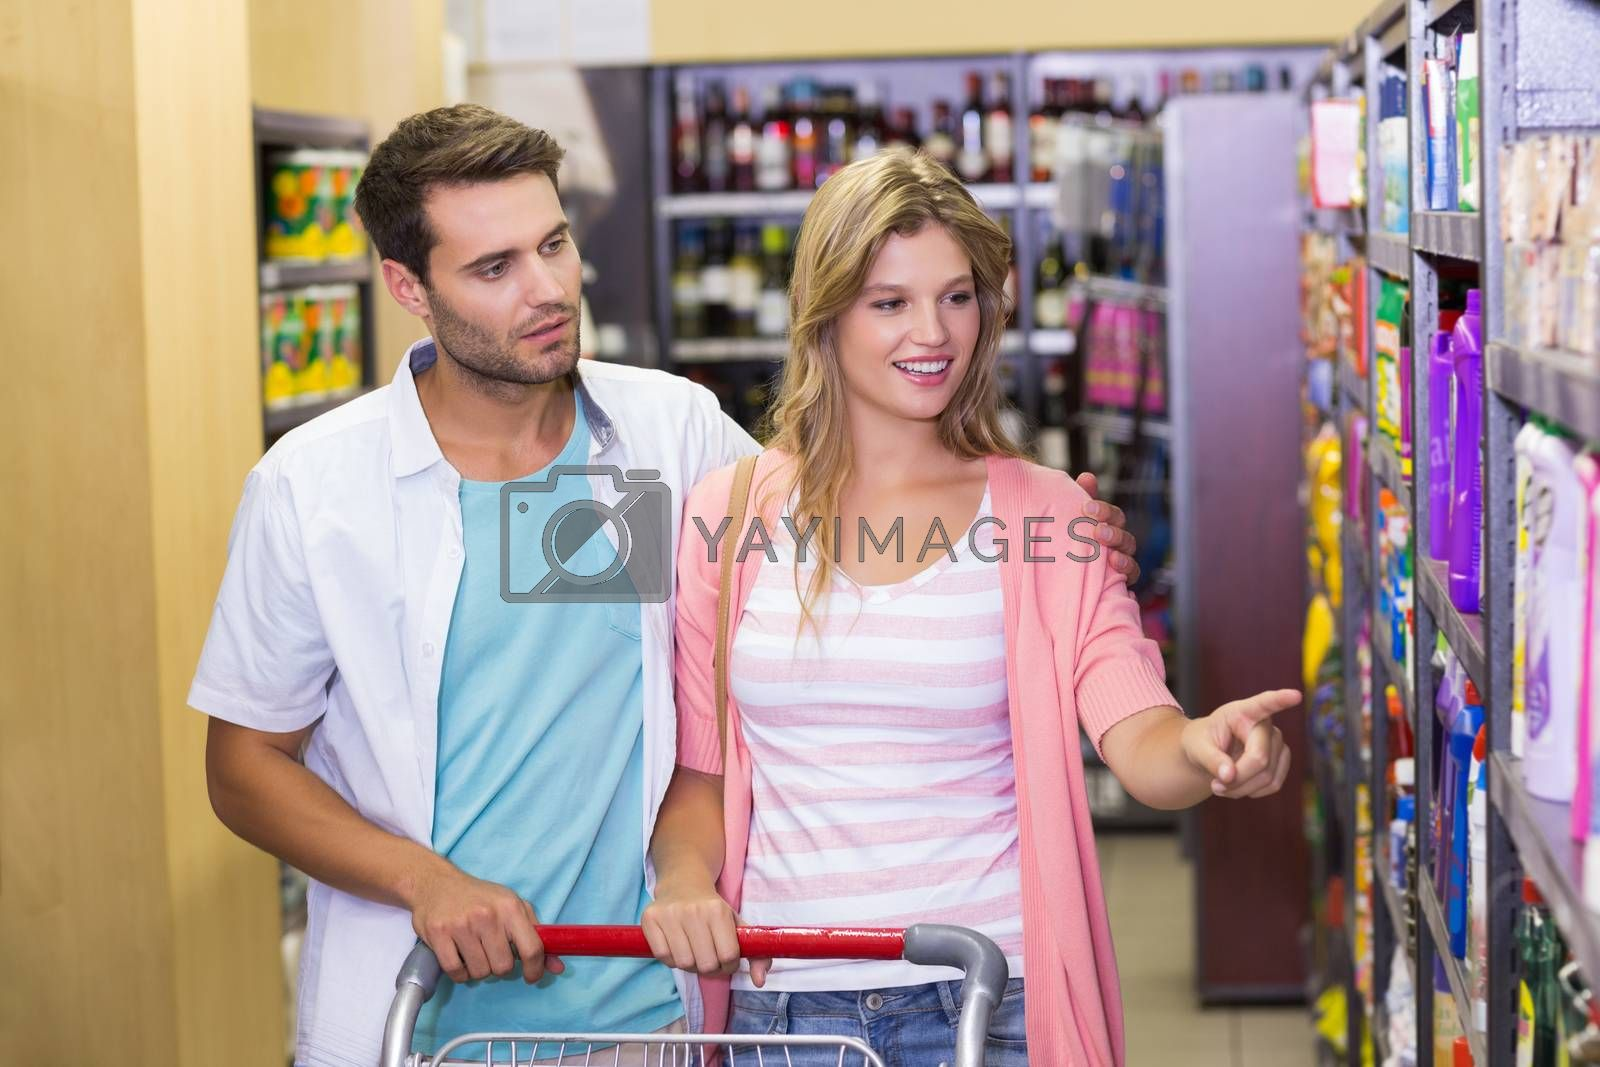 Royalty free image of Smiling bright couple showing a shelf  by Wavebreakmedia